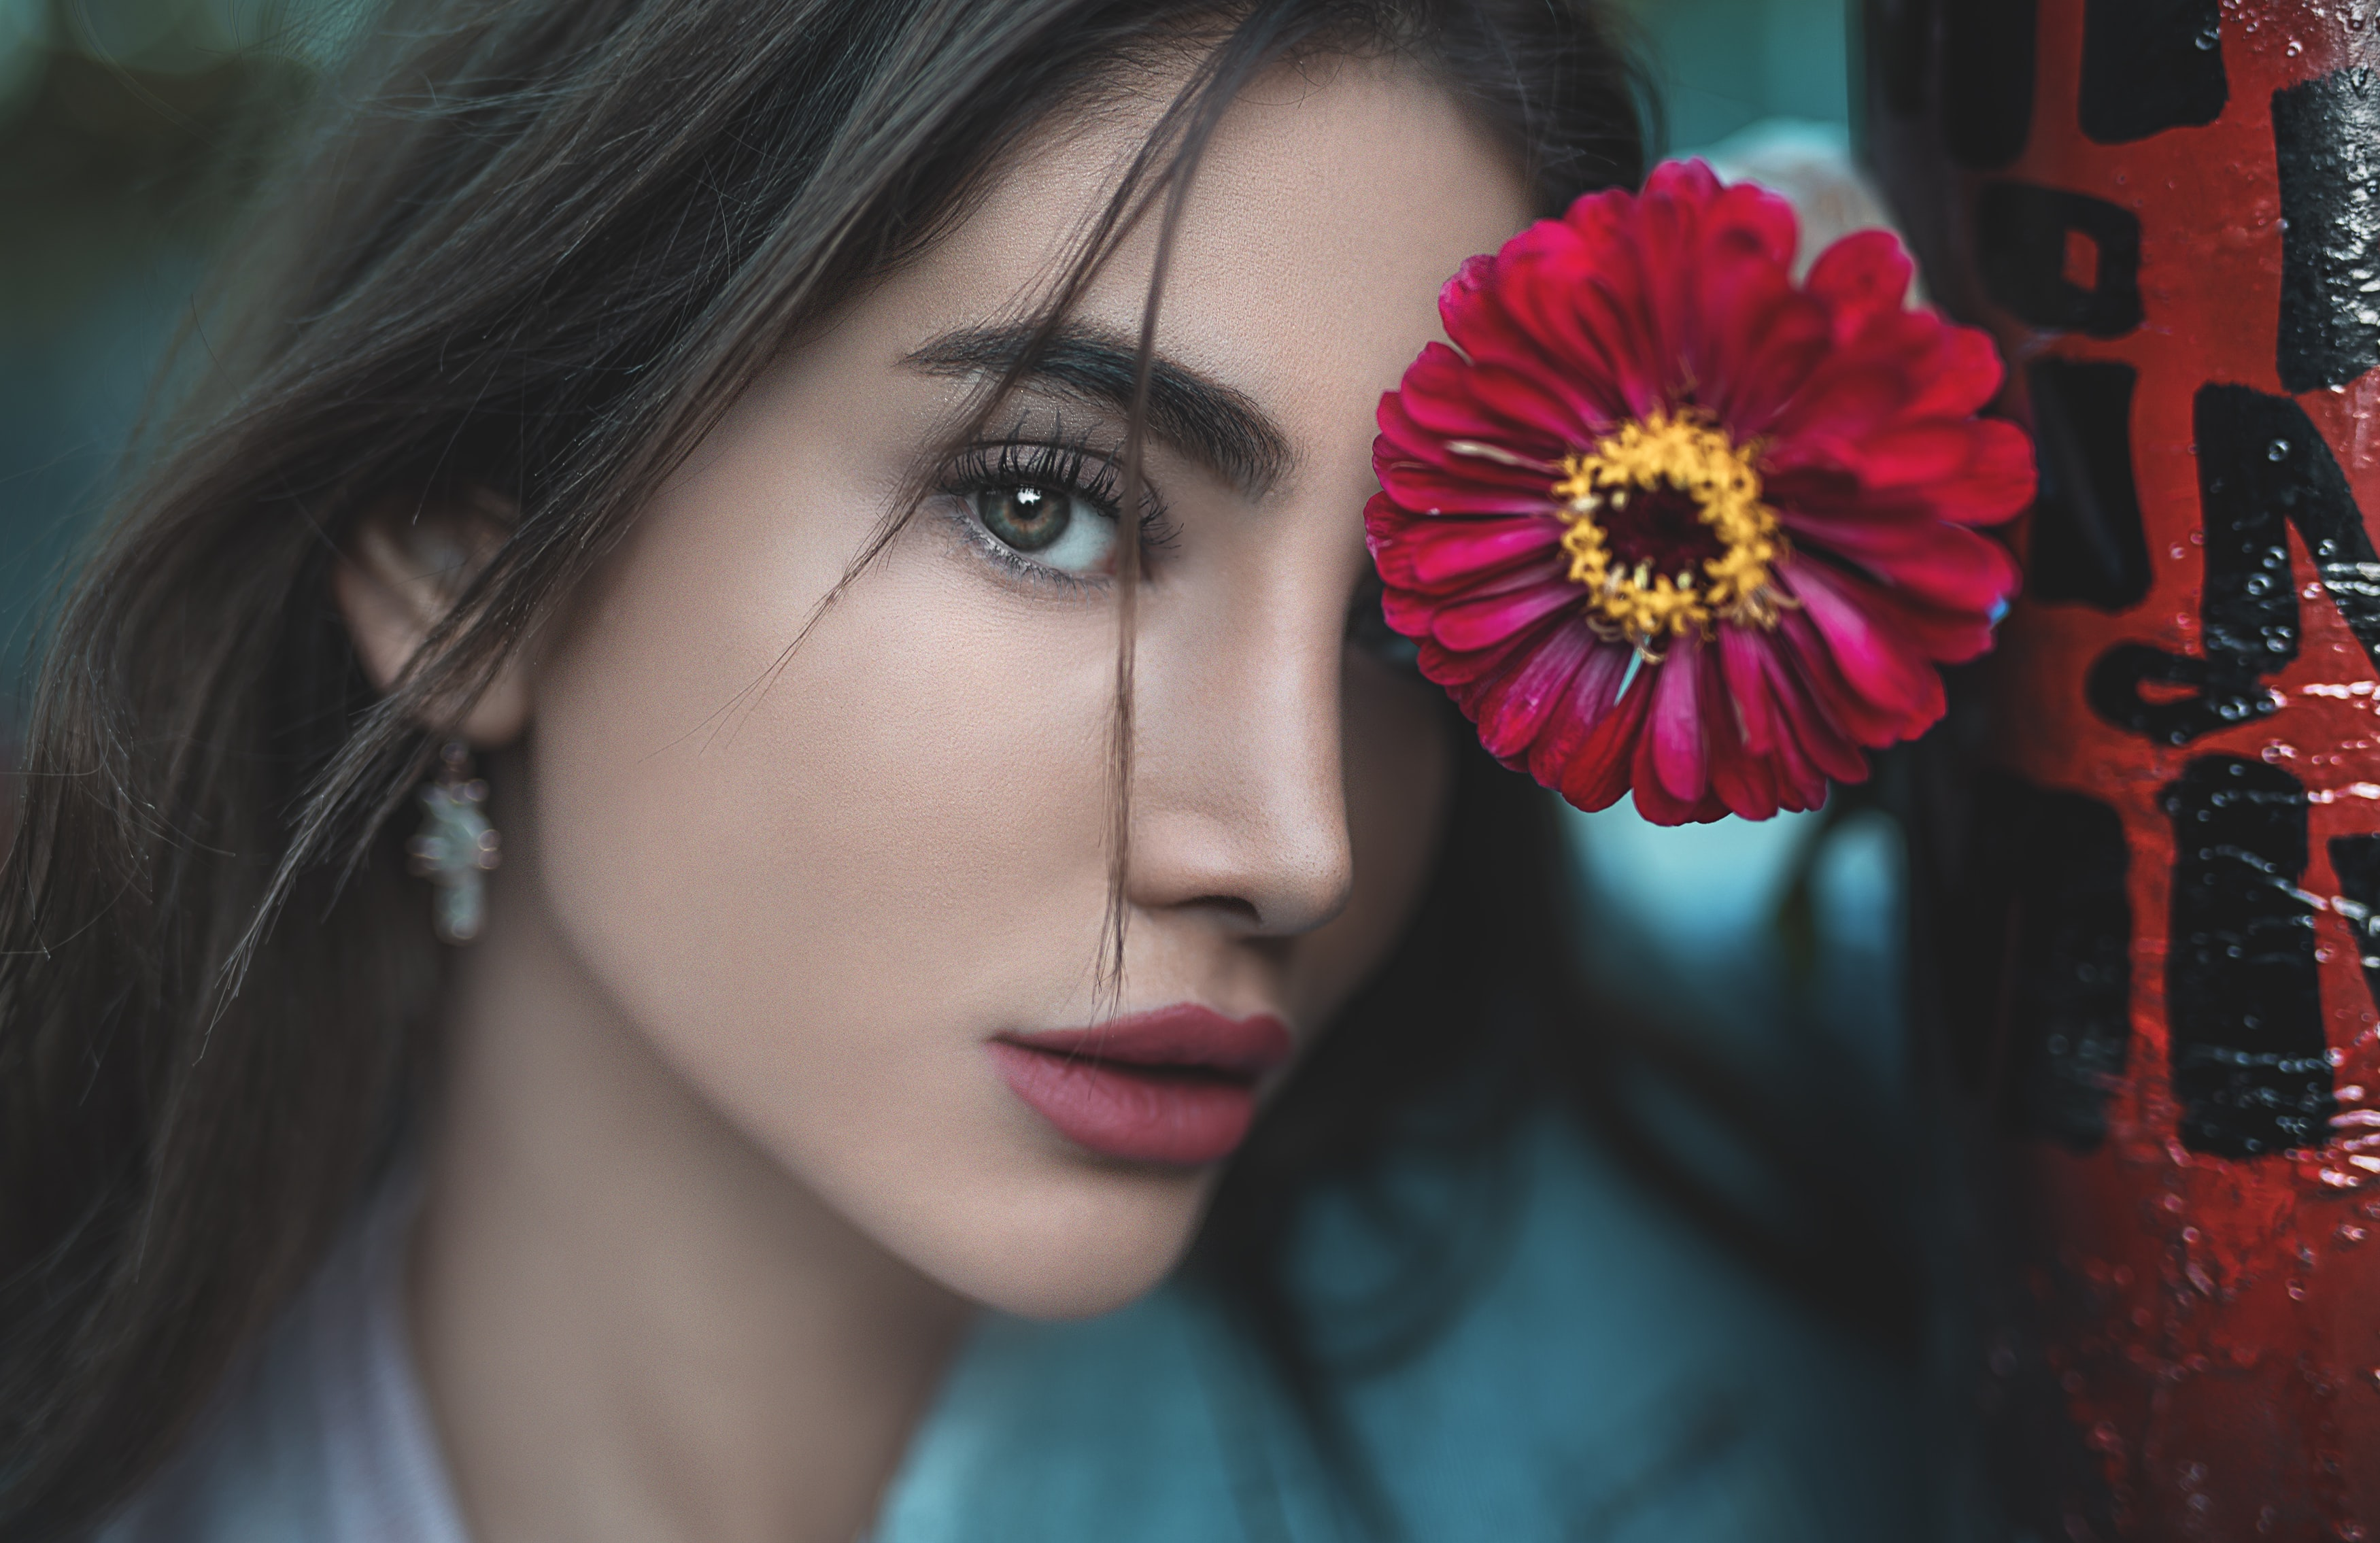 woman leaning on red-petaled flower